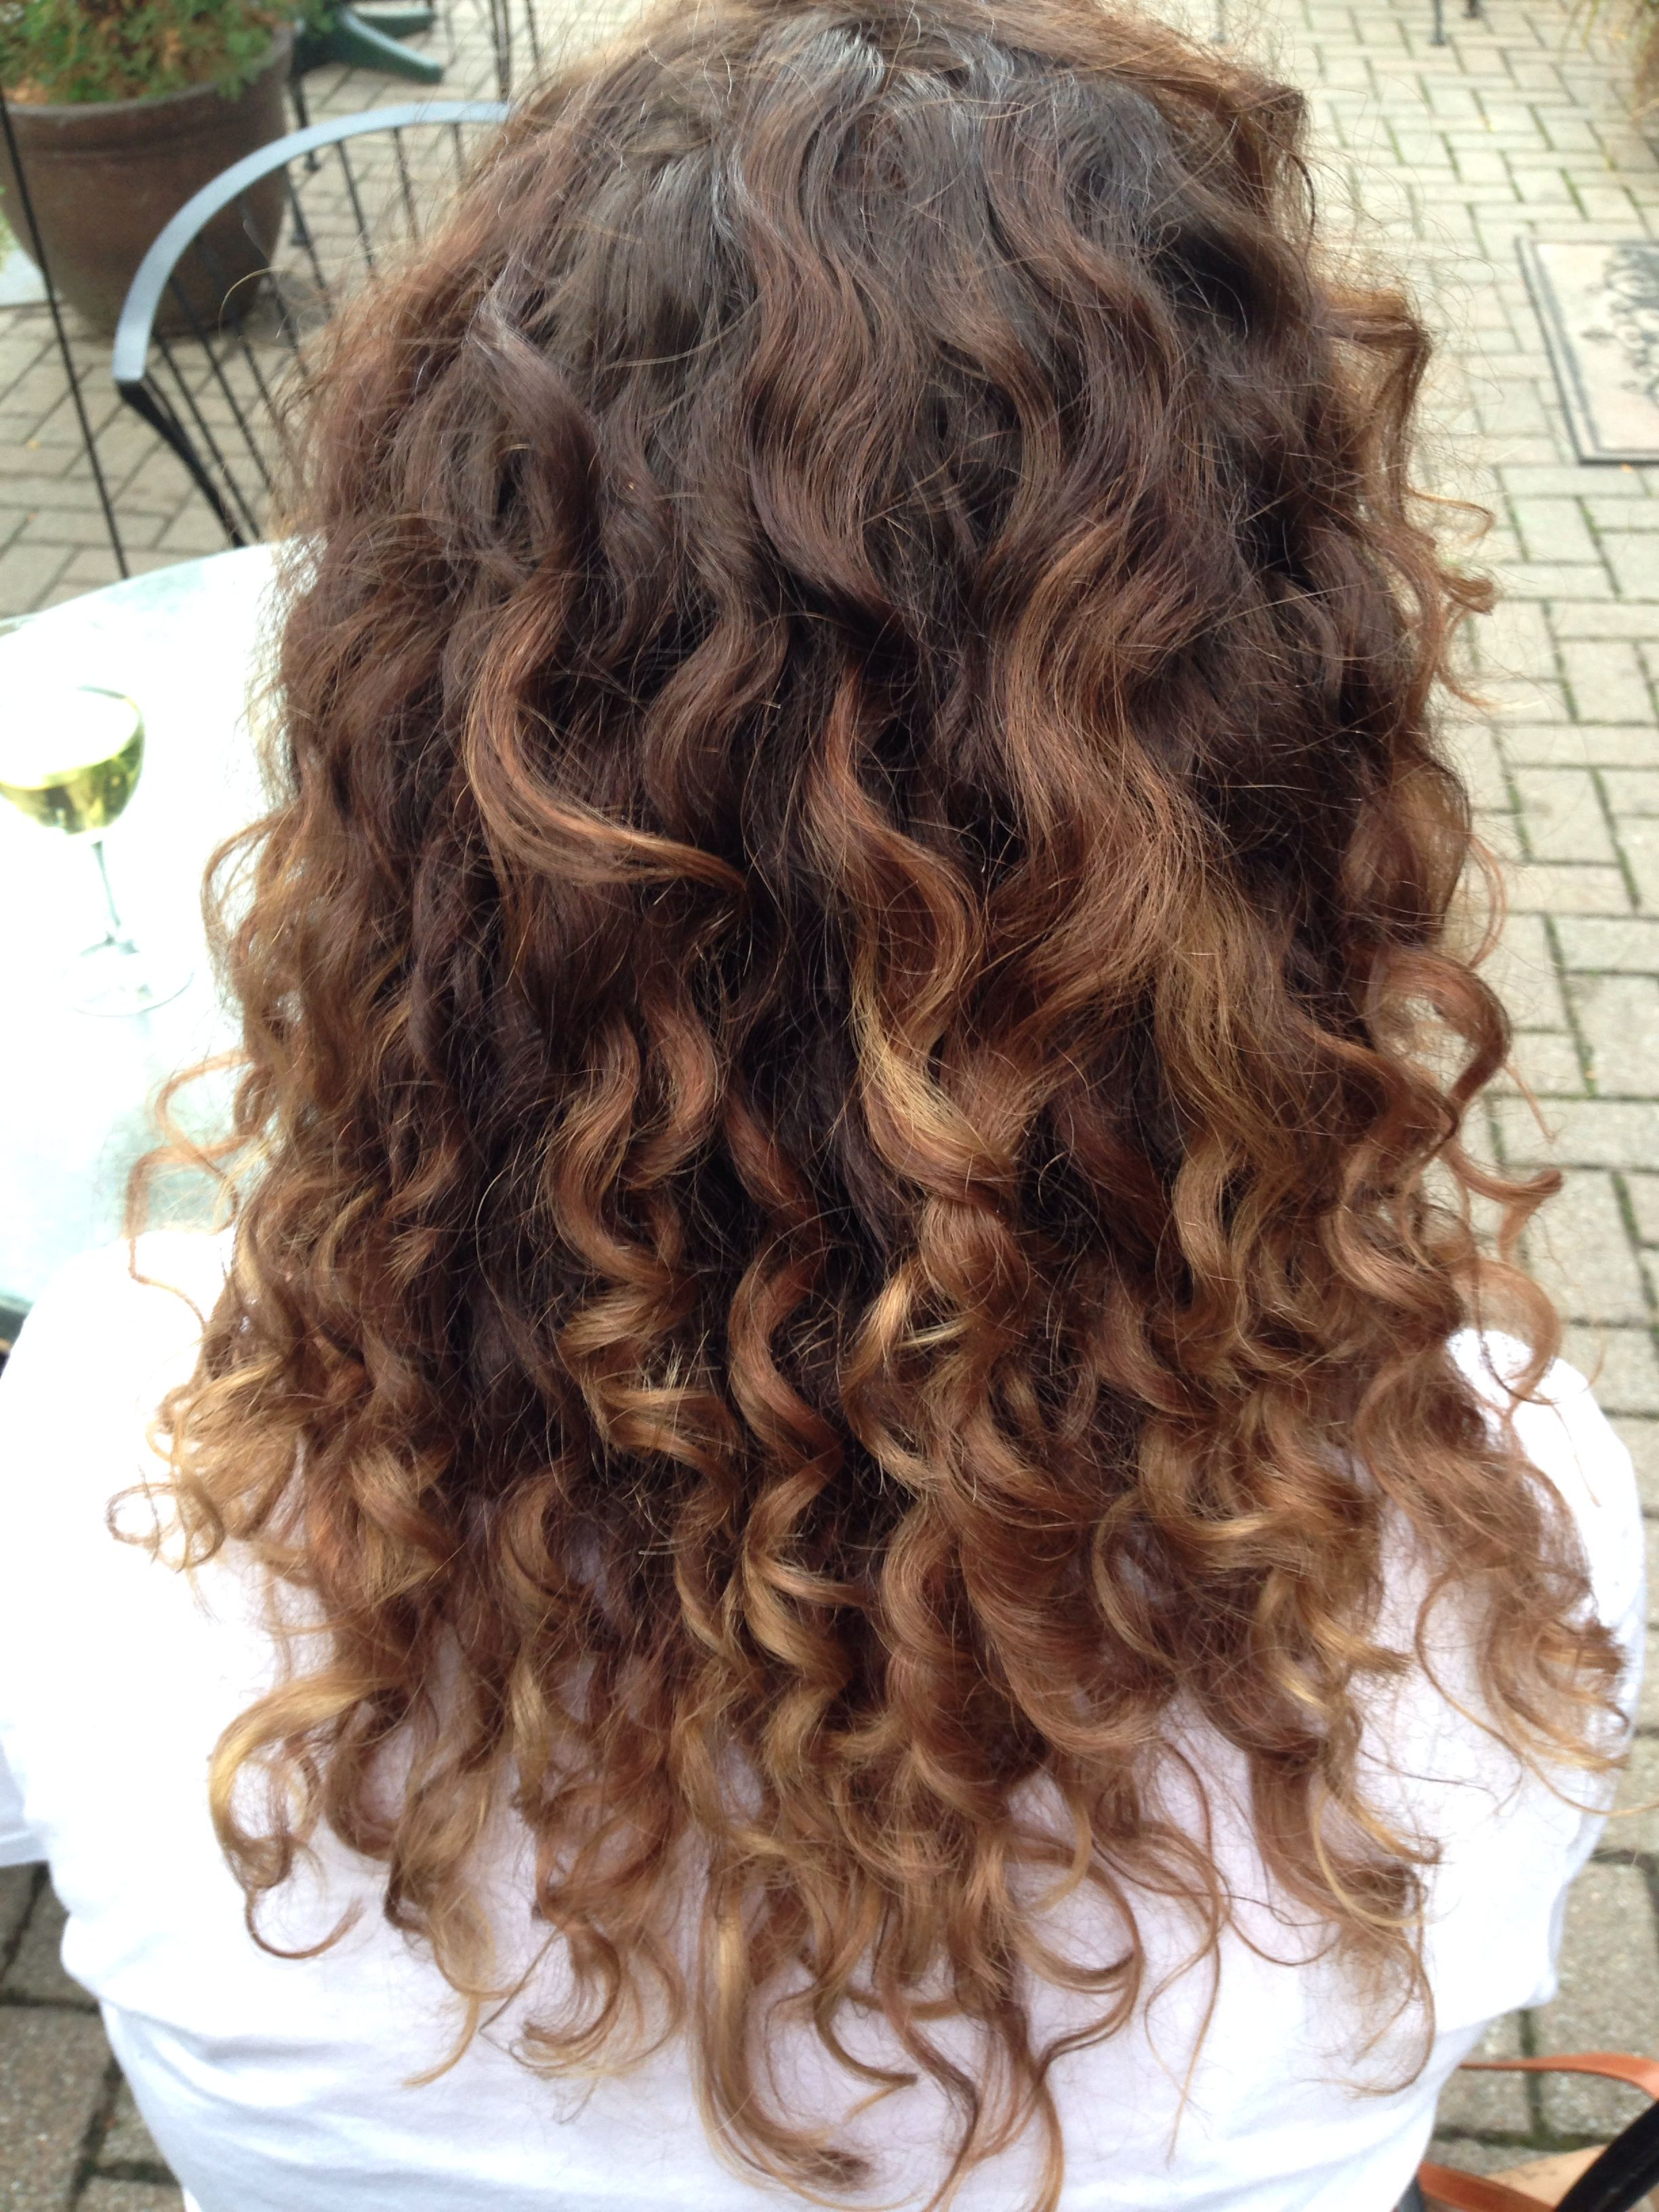 Naturally Curly Hair Carmel Ombre By The Best In The Business